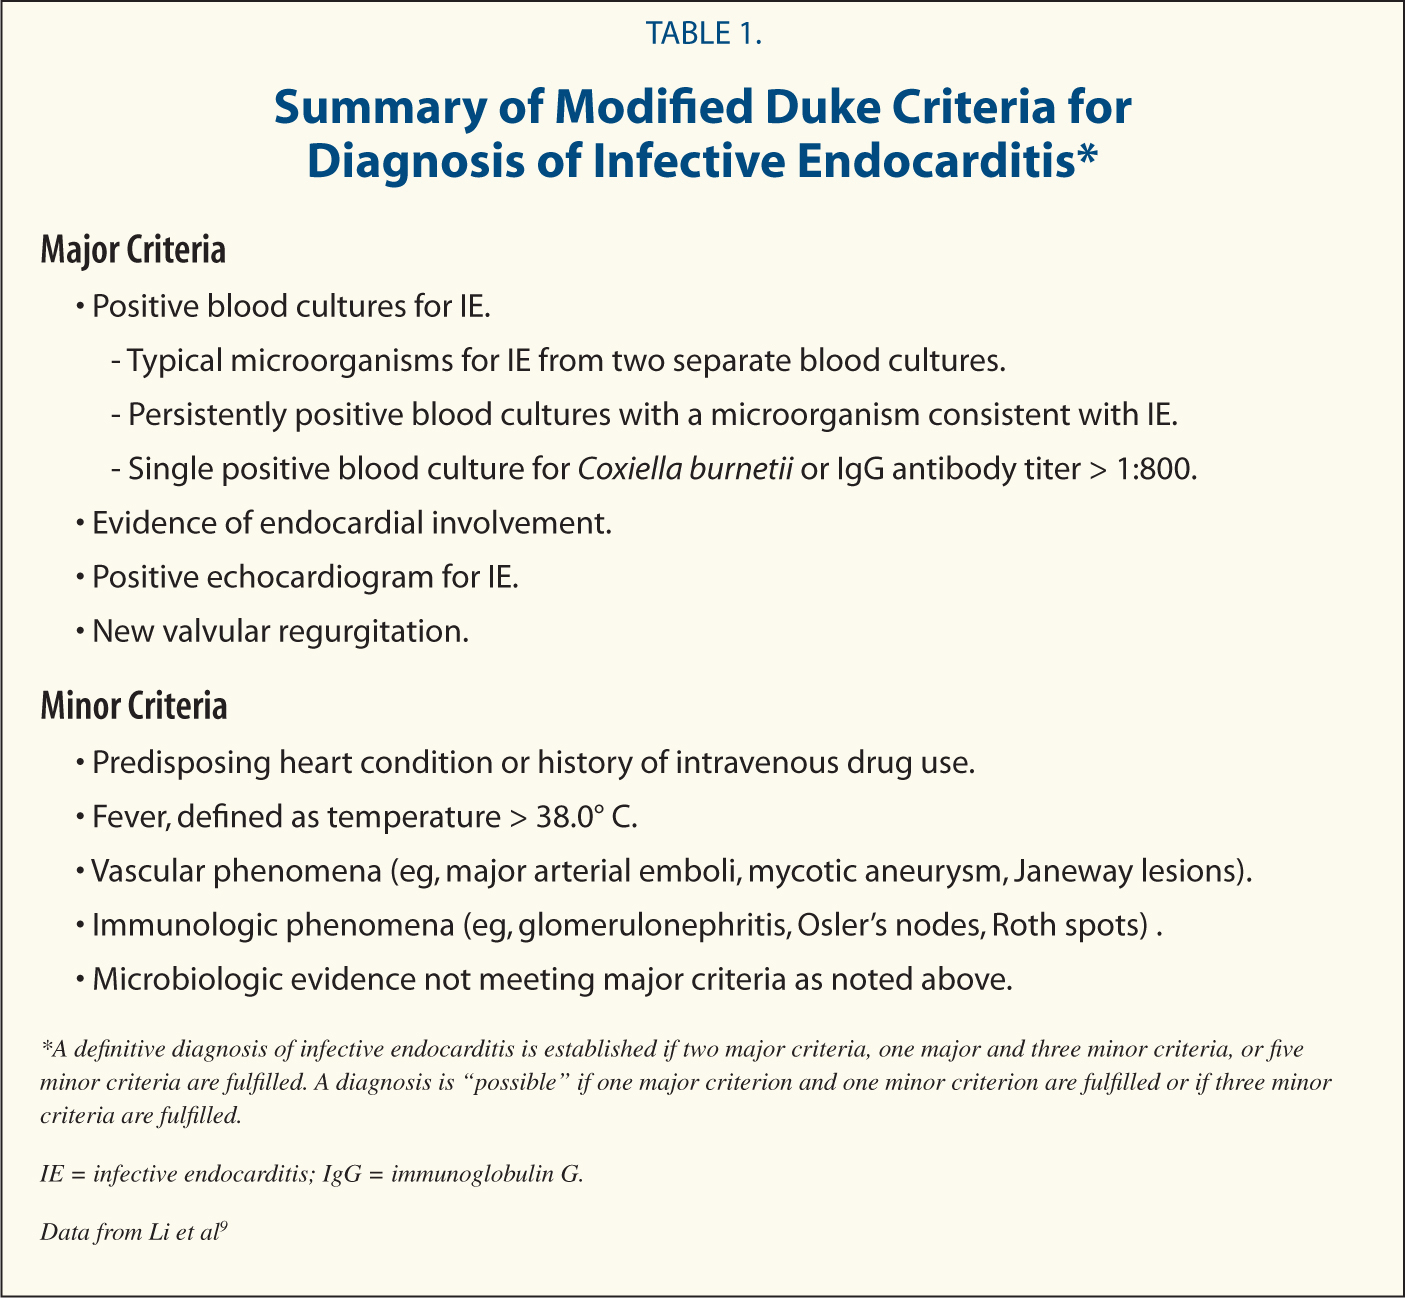 Summary of Modified Duke Criteria for Diagnosis of Infective Endocarditis*